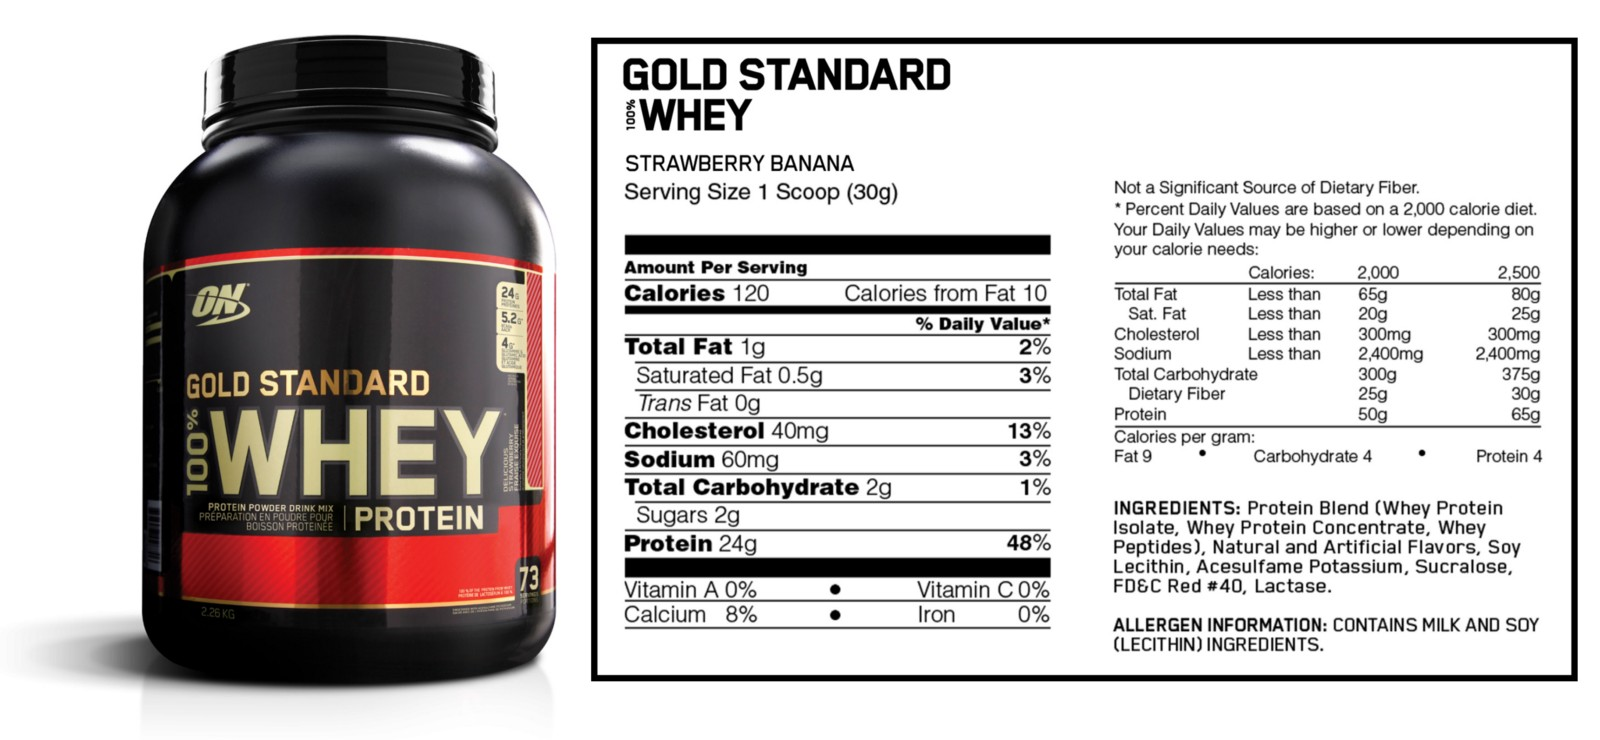 How to take whey protein gold standard